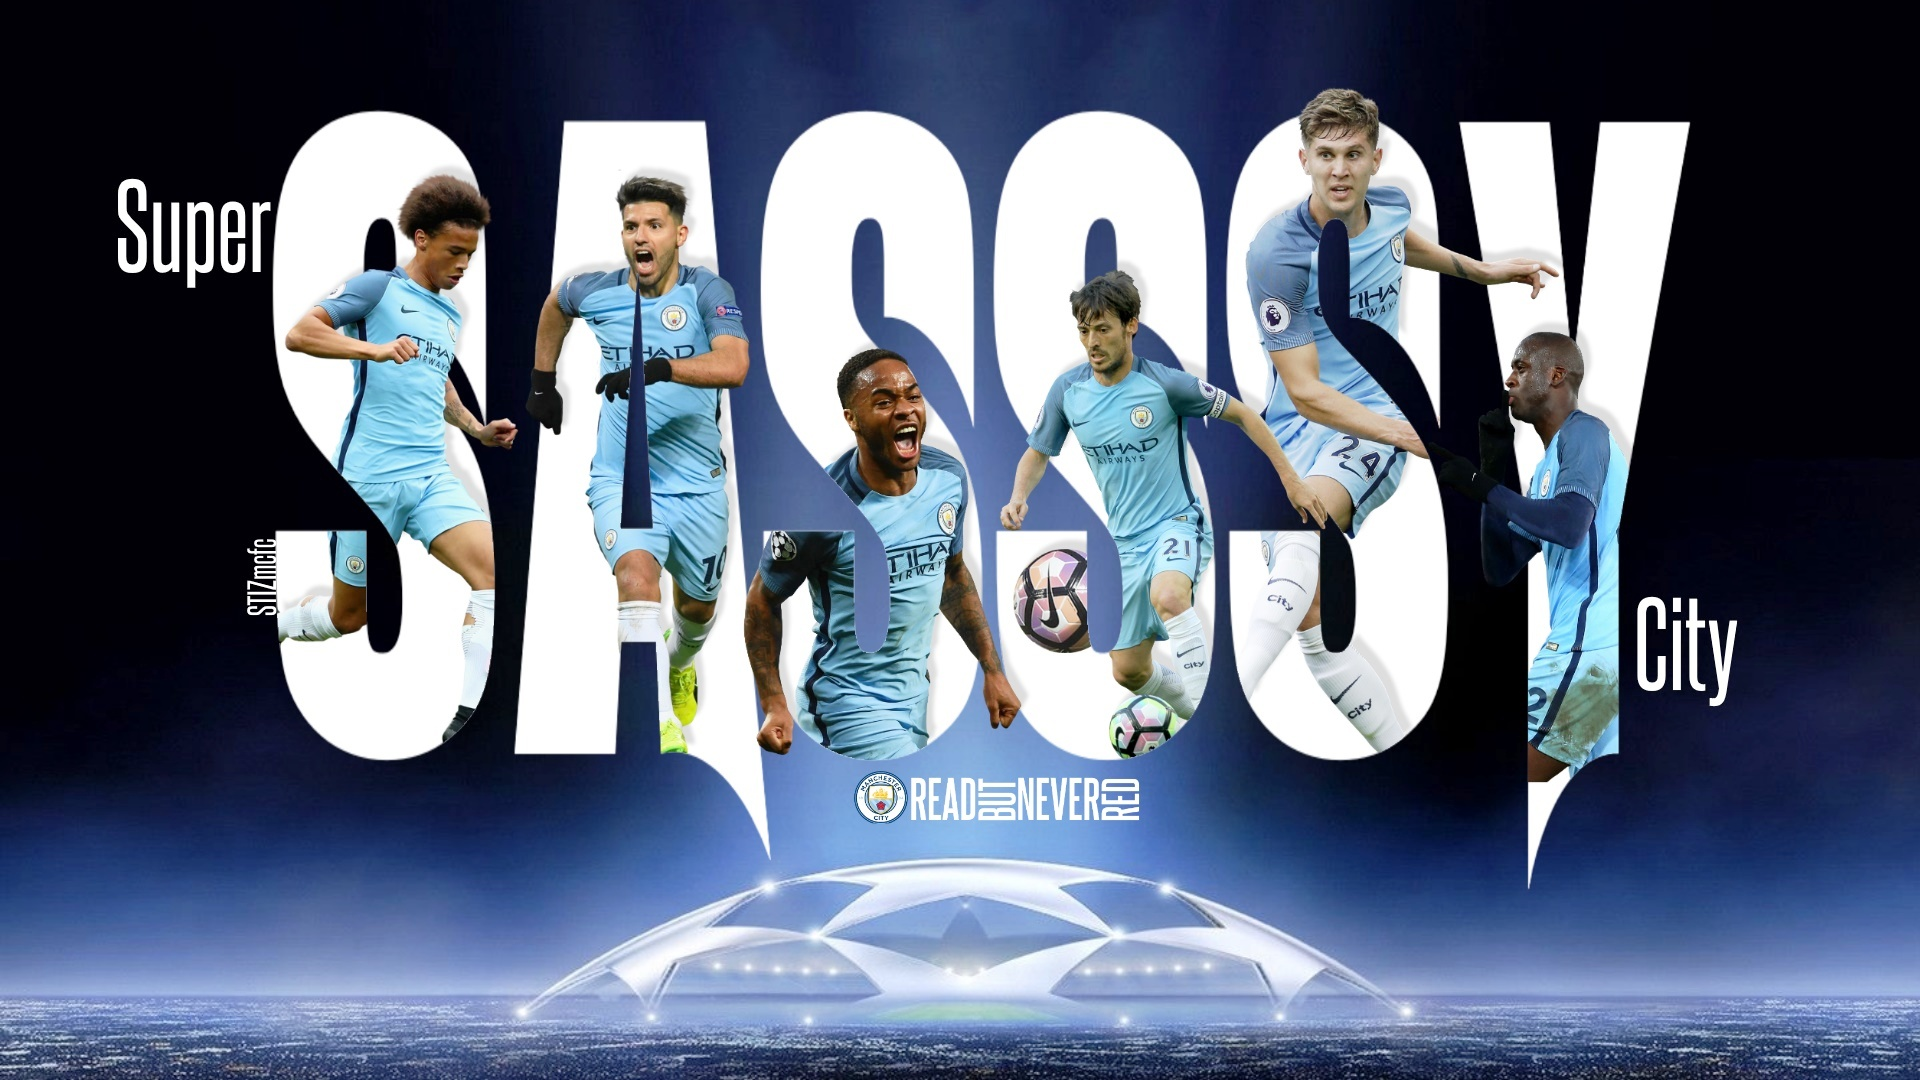 Super SASSSY City - another great bespoke graphic created by Stiz from our BlueRoom sponsors.